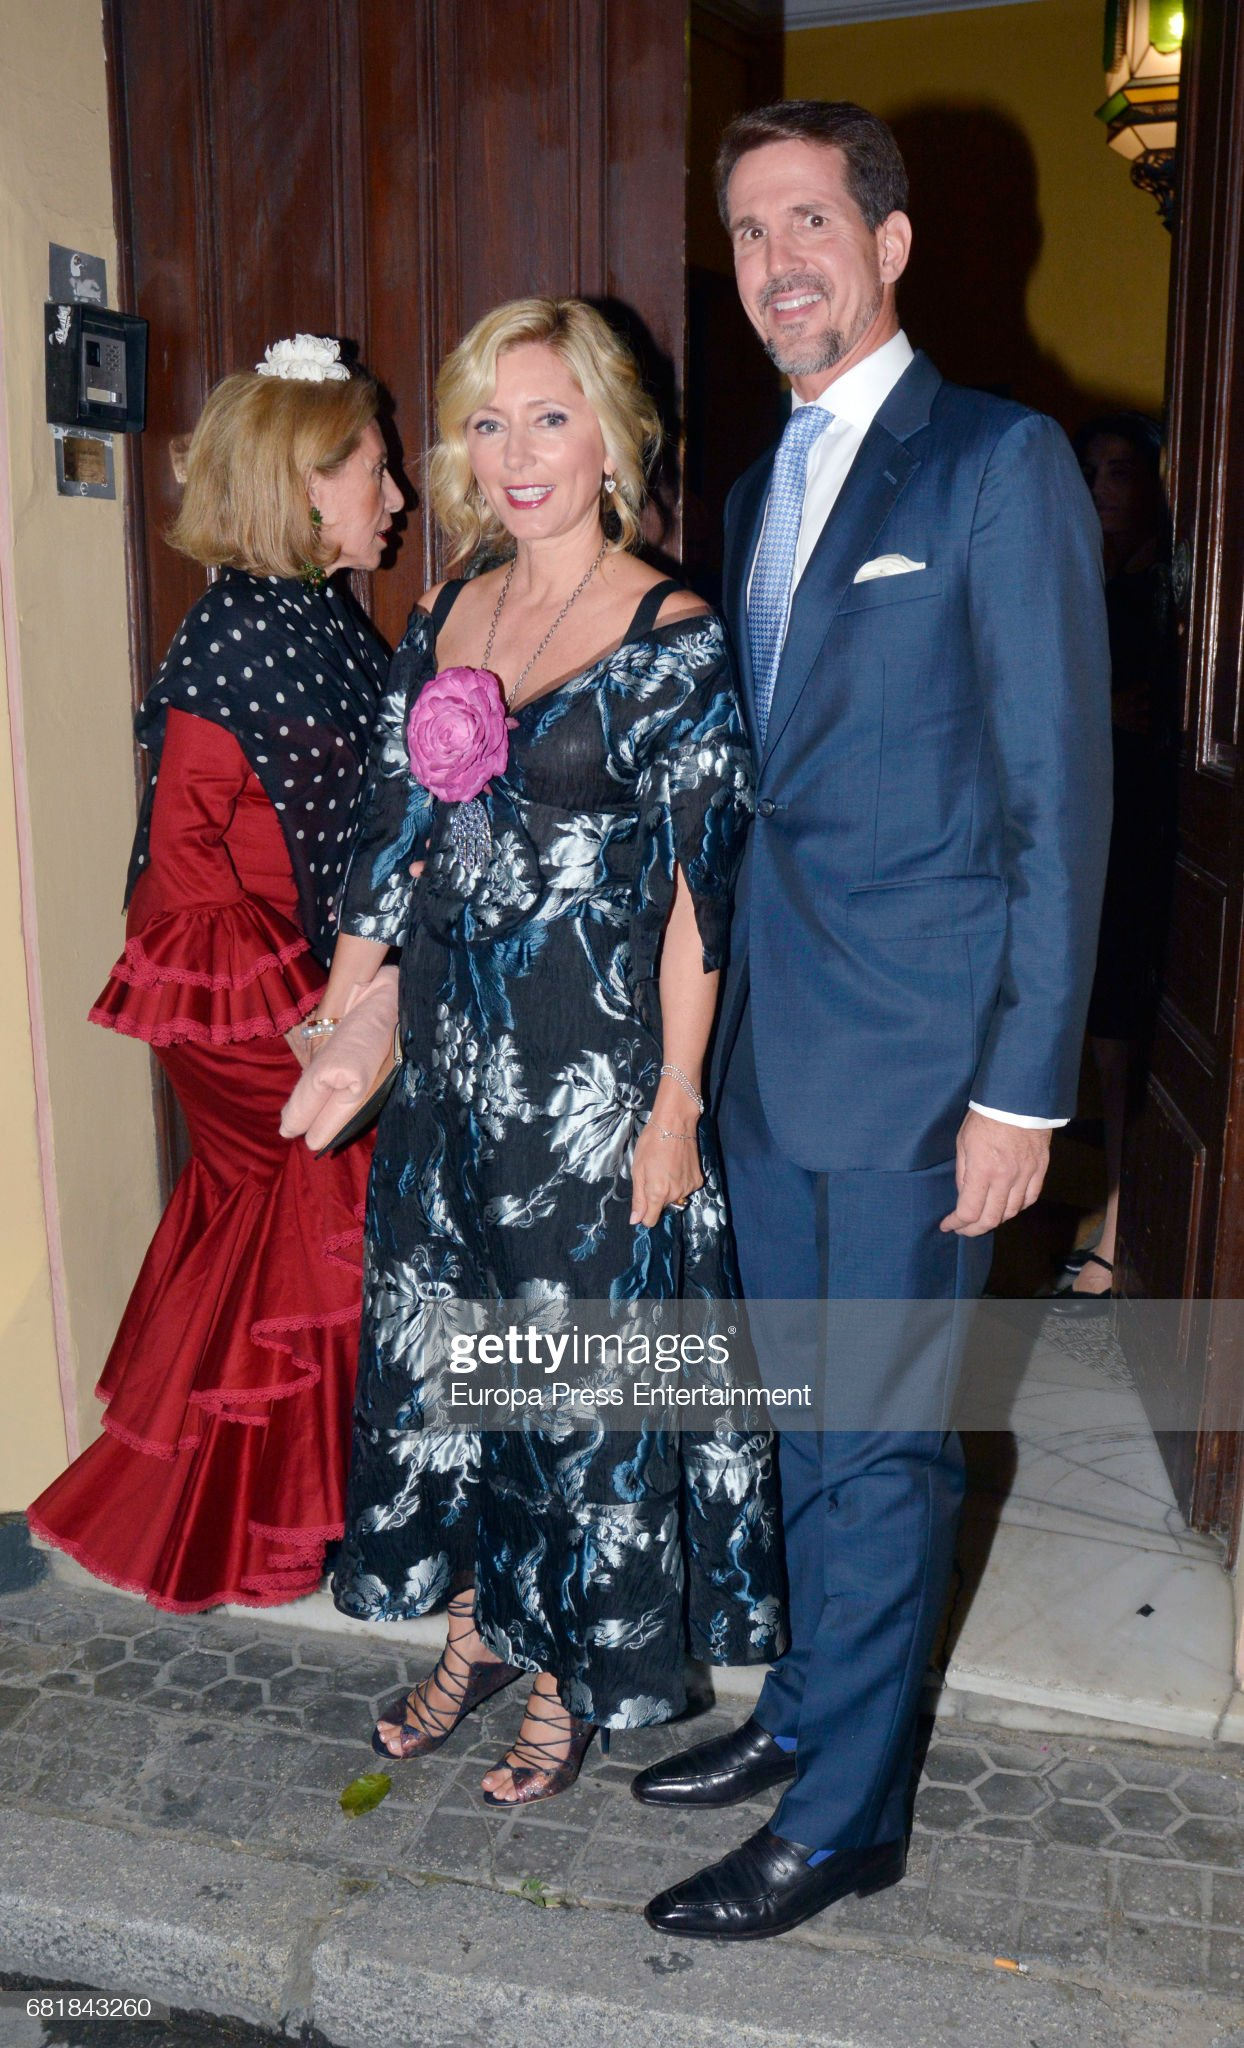 April's Fair Party At Italian Consulate In Seville : News Photo